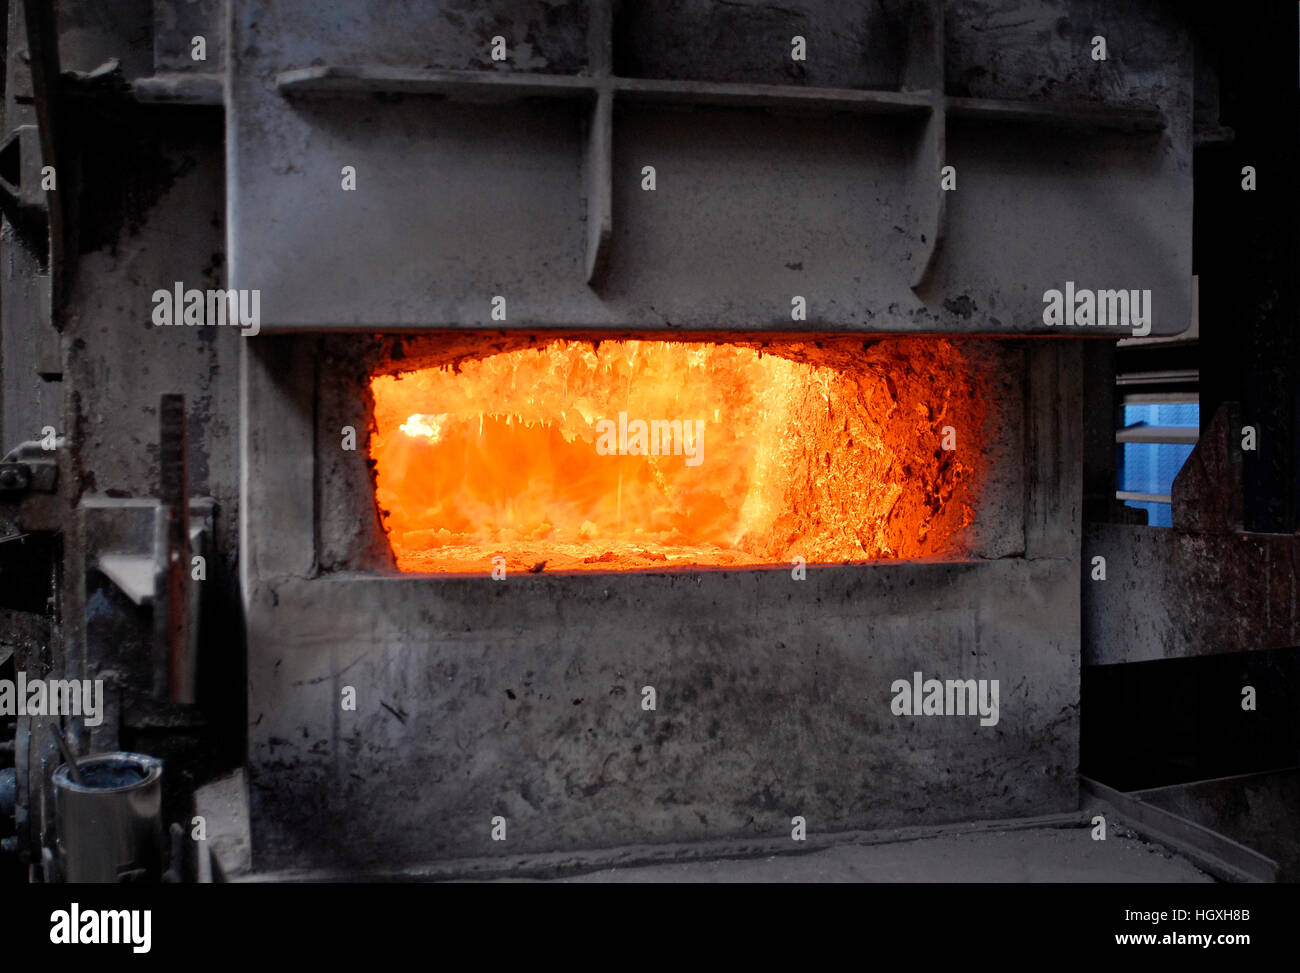 Looking into a melting furnace in a foundry for aluminum casting. - Stock Image